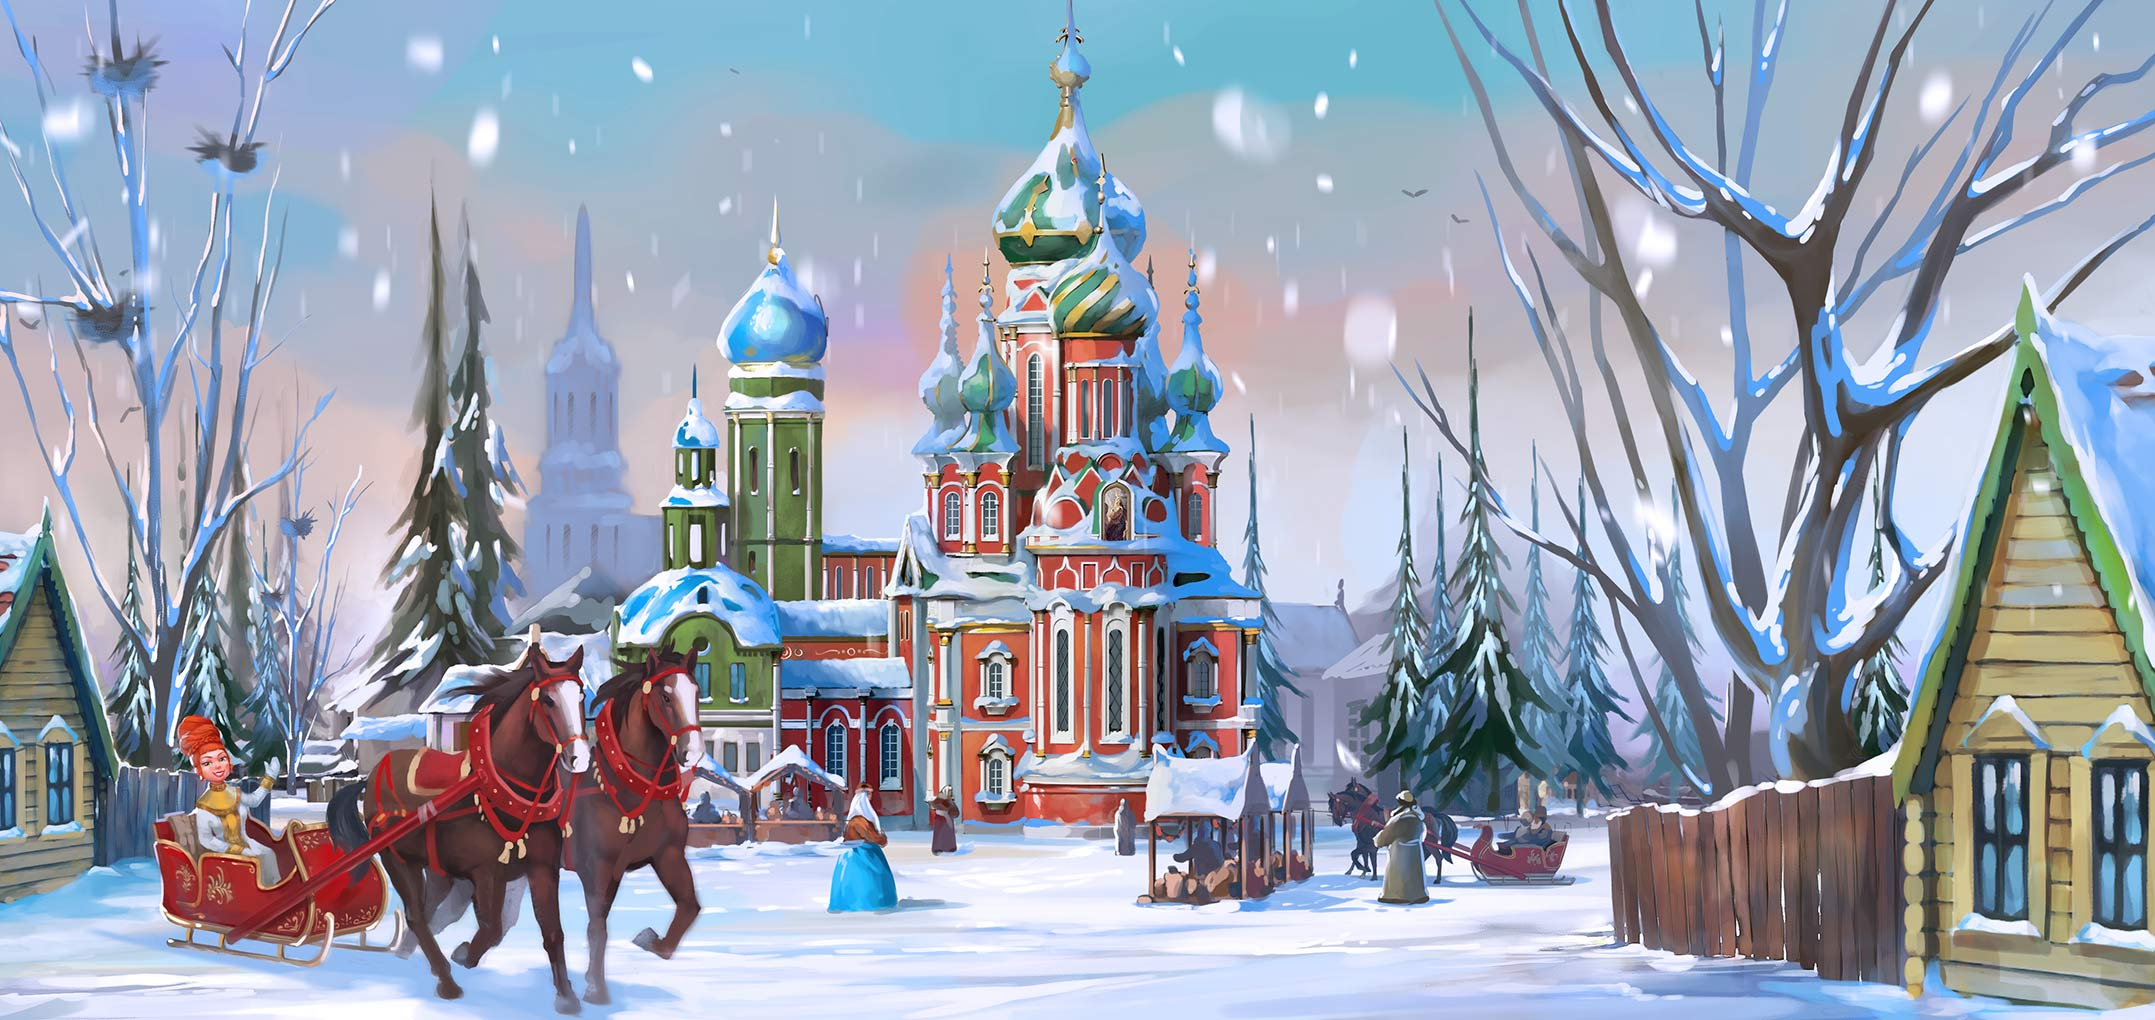 Forge Of Empires Christmas Event 2019 2018 Winter Event   Forge of Empires Wiki   FANDOM powered by Wikia